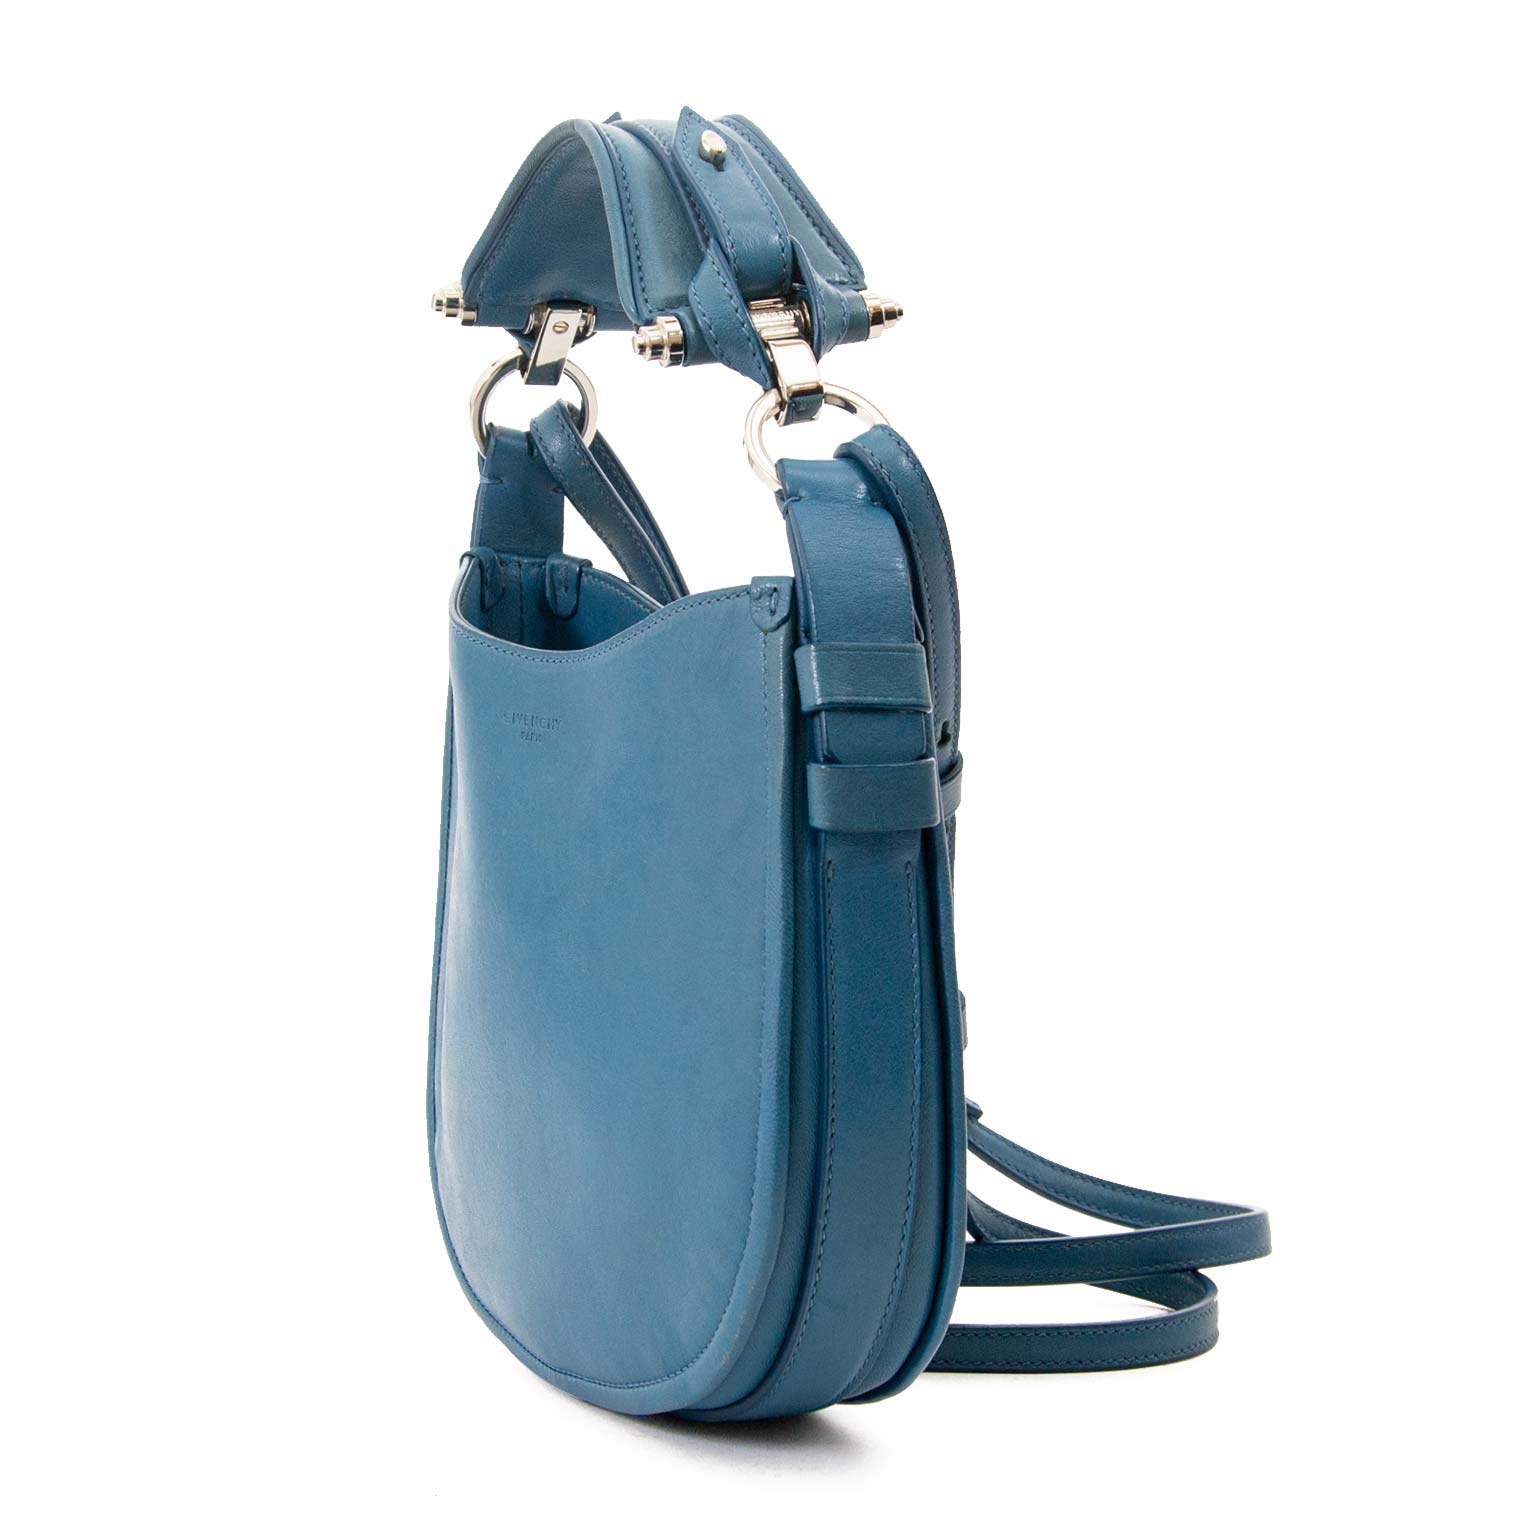 ee1bdb514b03 ... Buy second hand authentic Givenchy Small Blue Obsedia Hobo Bag safe  online at labellov.com